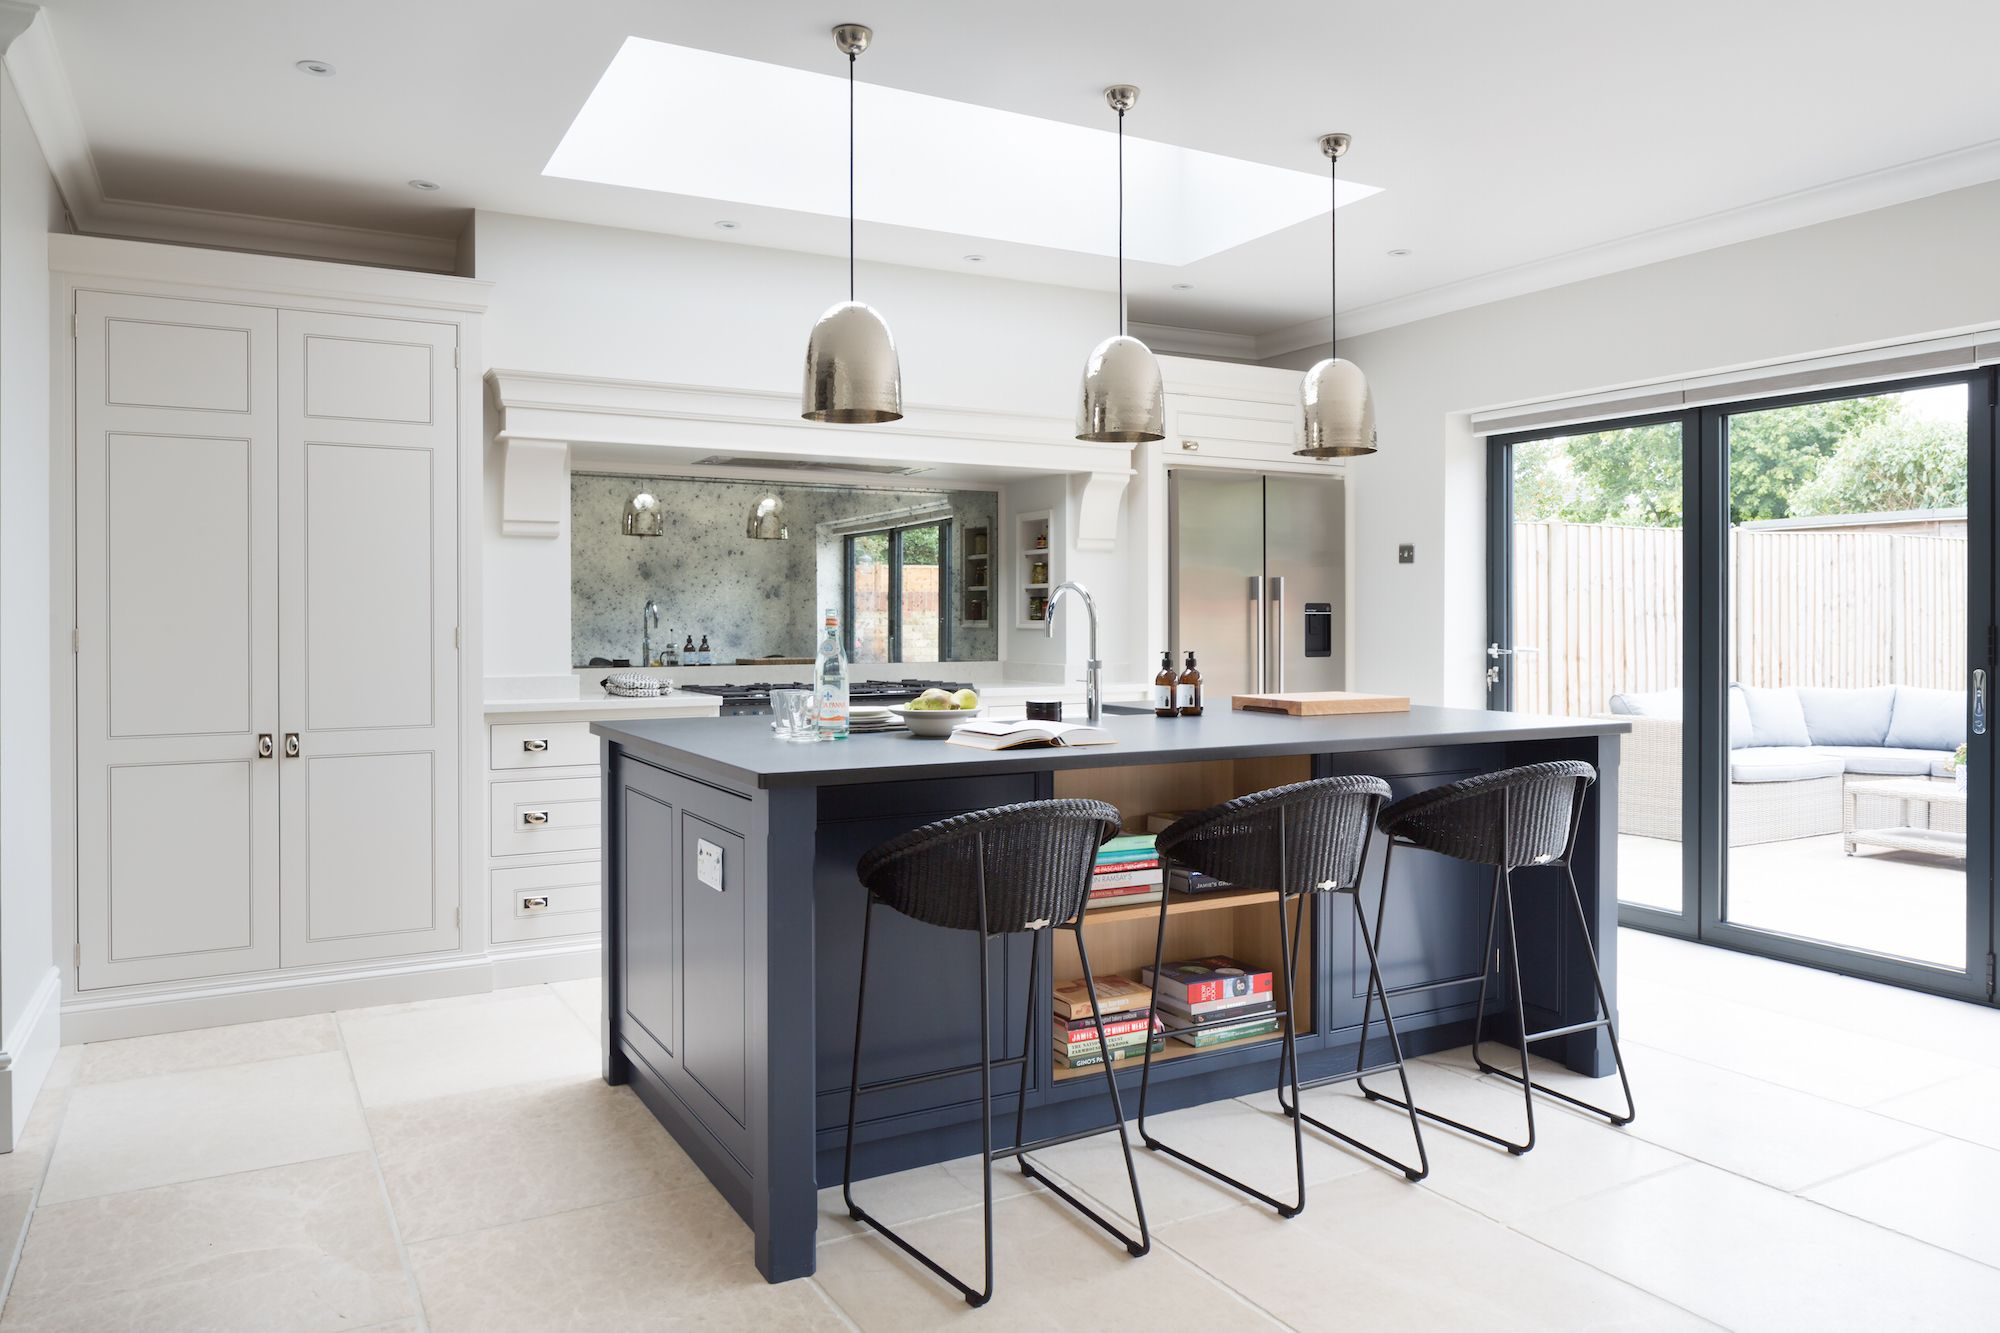 Dark Grey Modern Kitchen contemporary family kitchen, chelmford, essex - humphrey munson